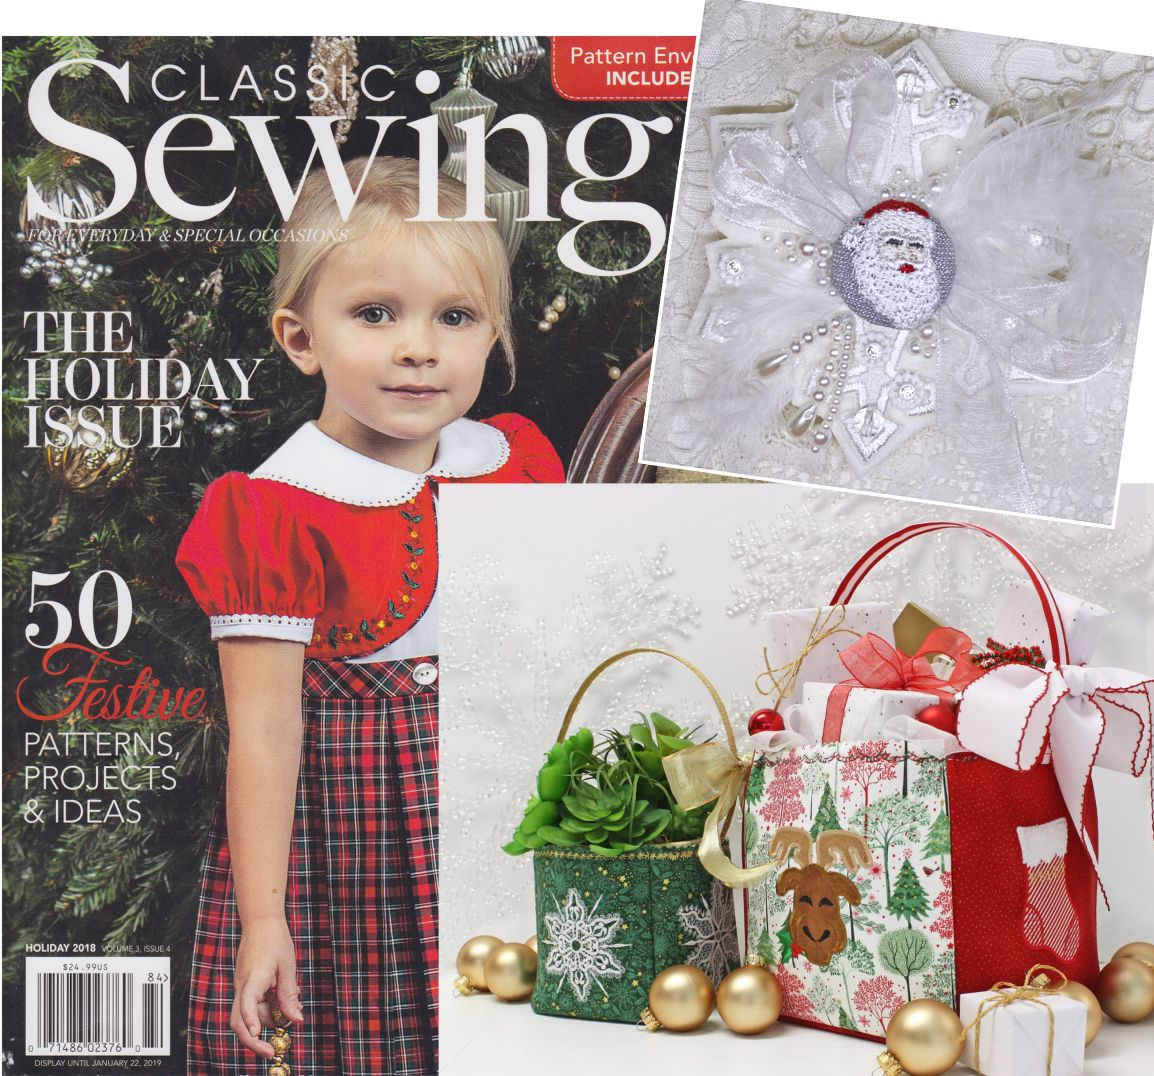 Classic Sewing Holiday Issue 2018